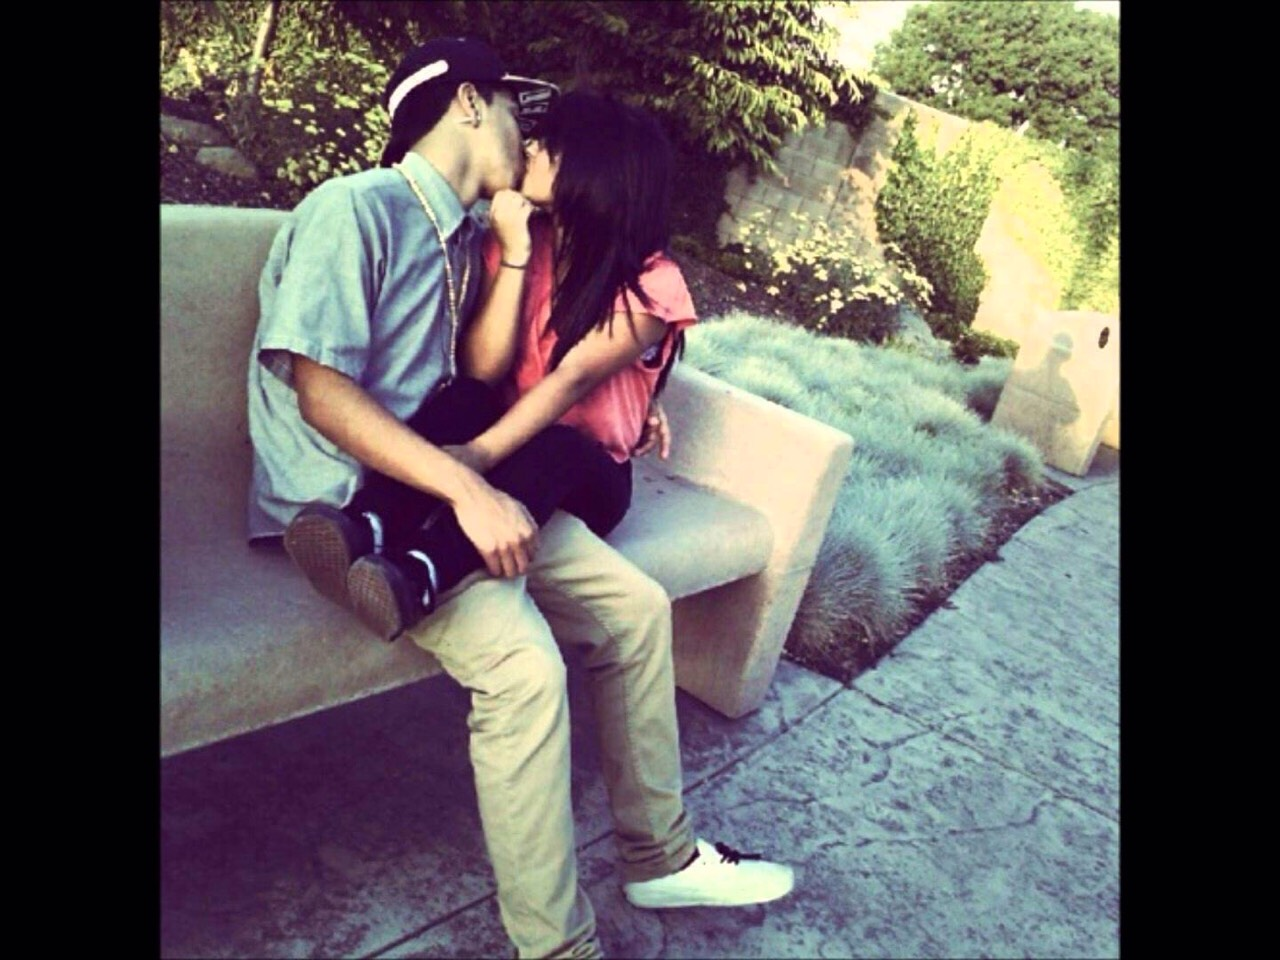 cute relationship photo ideas by china doll musely